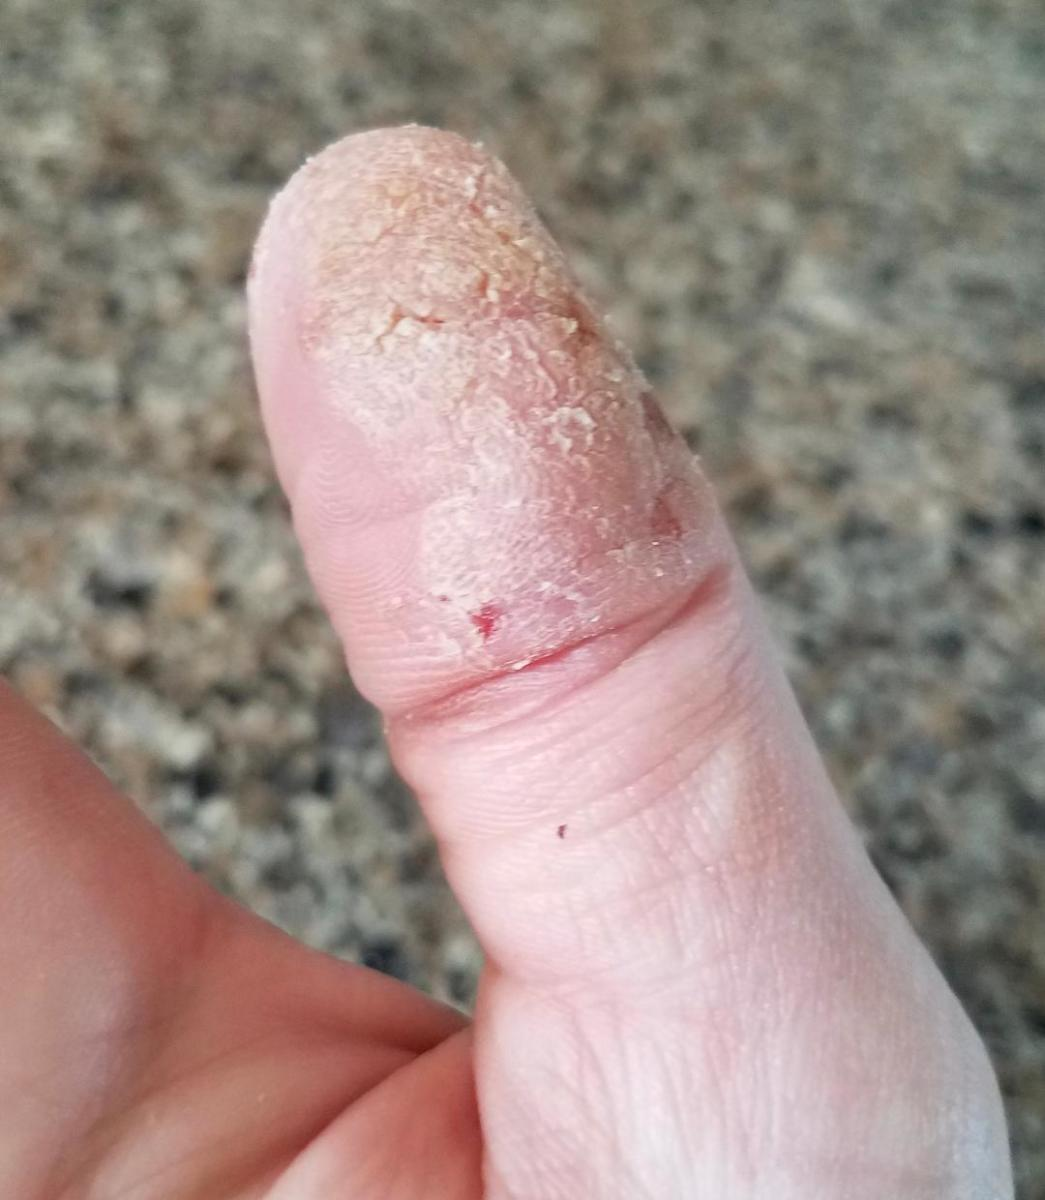 My thumb at one of its worst times.